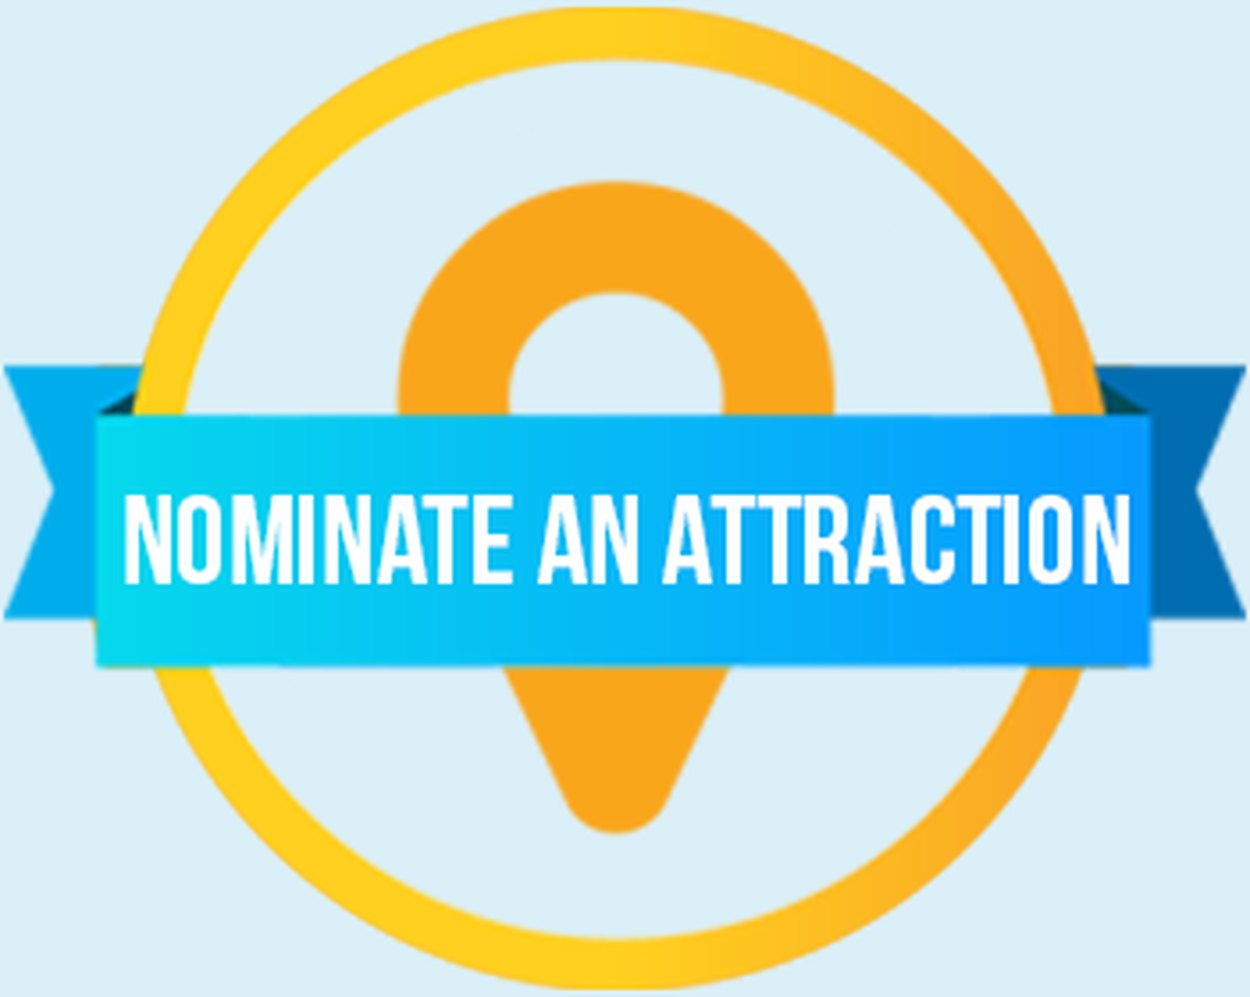 Nominate an attraction